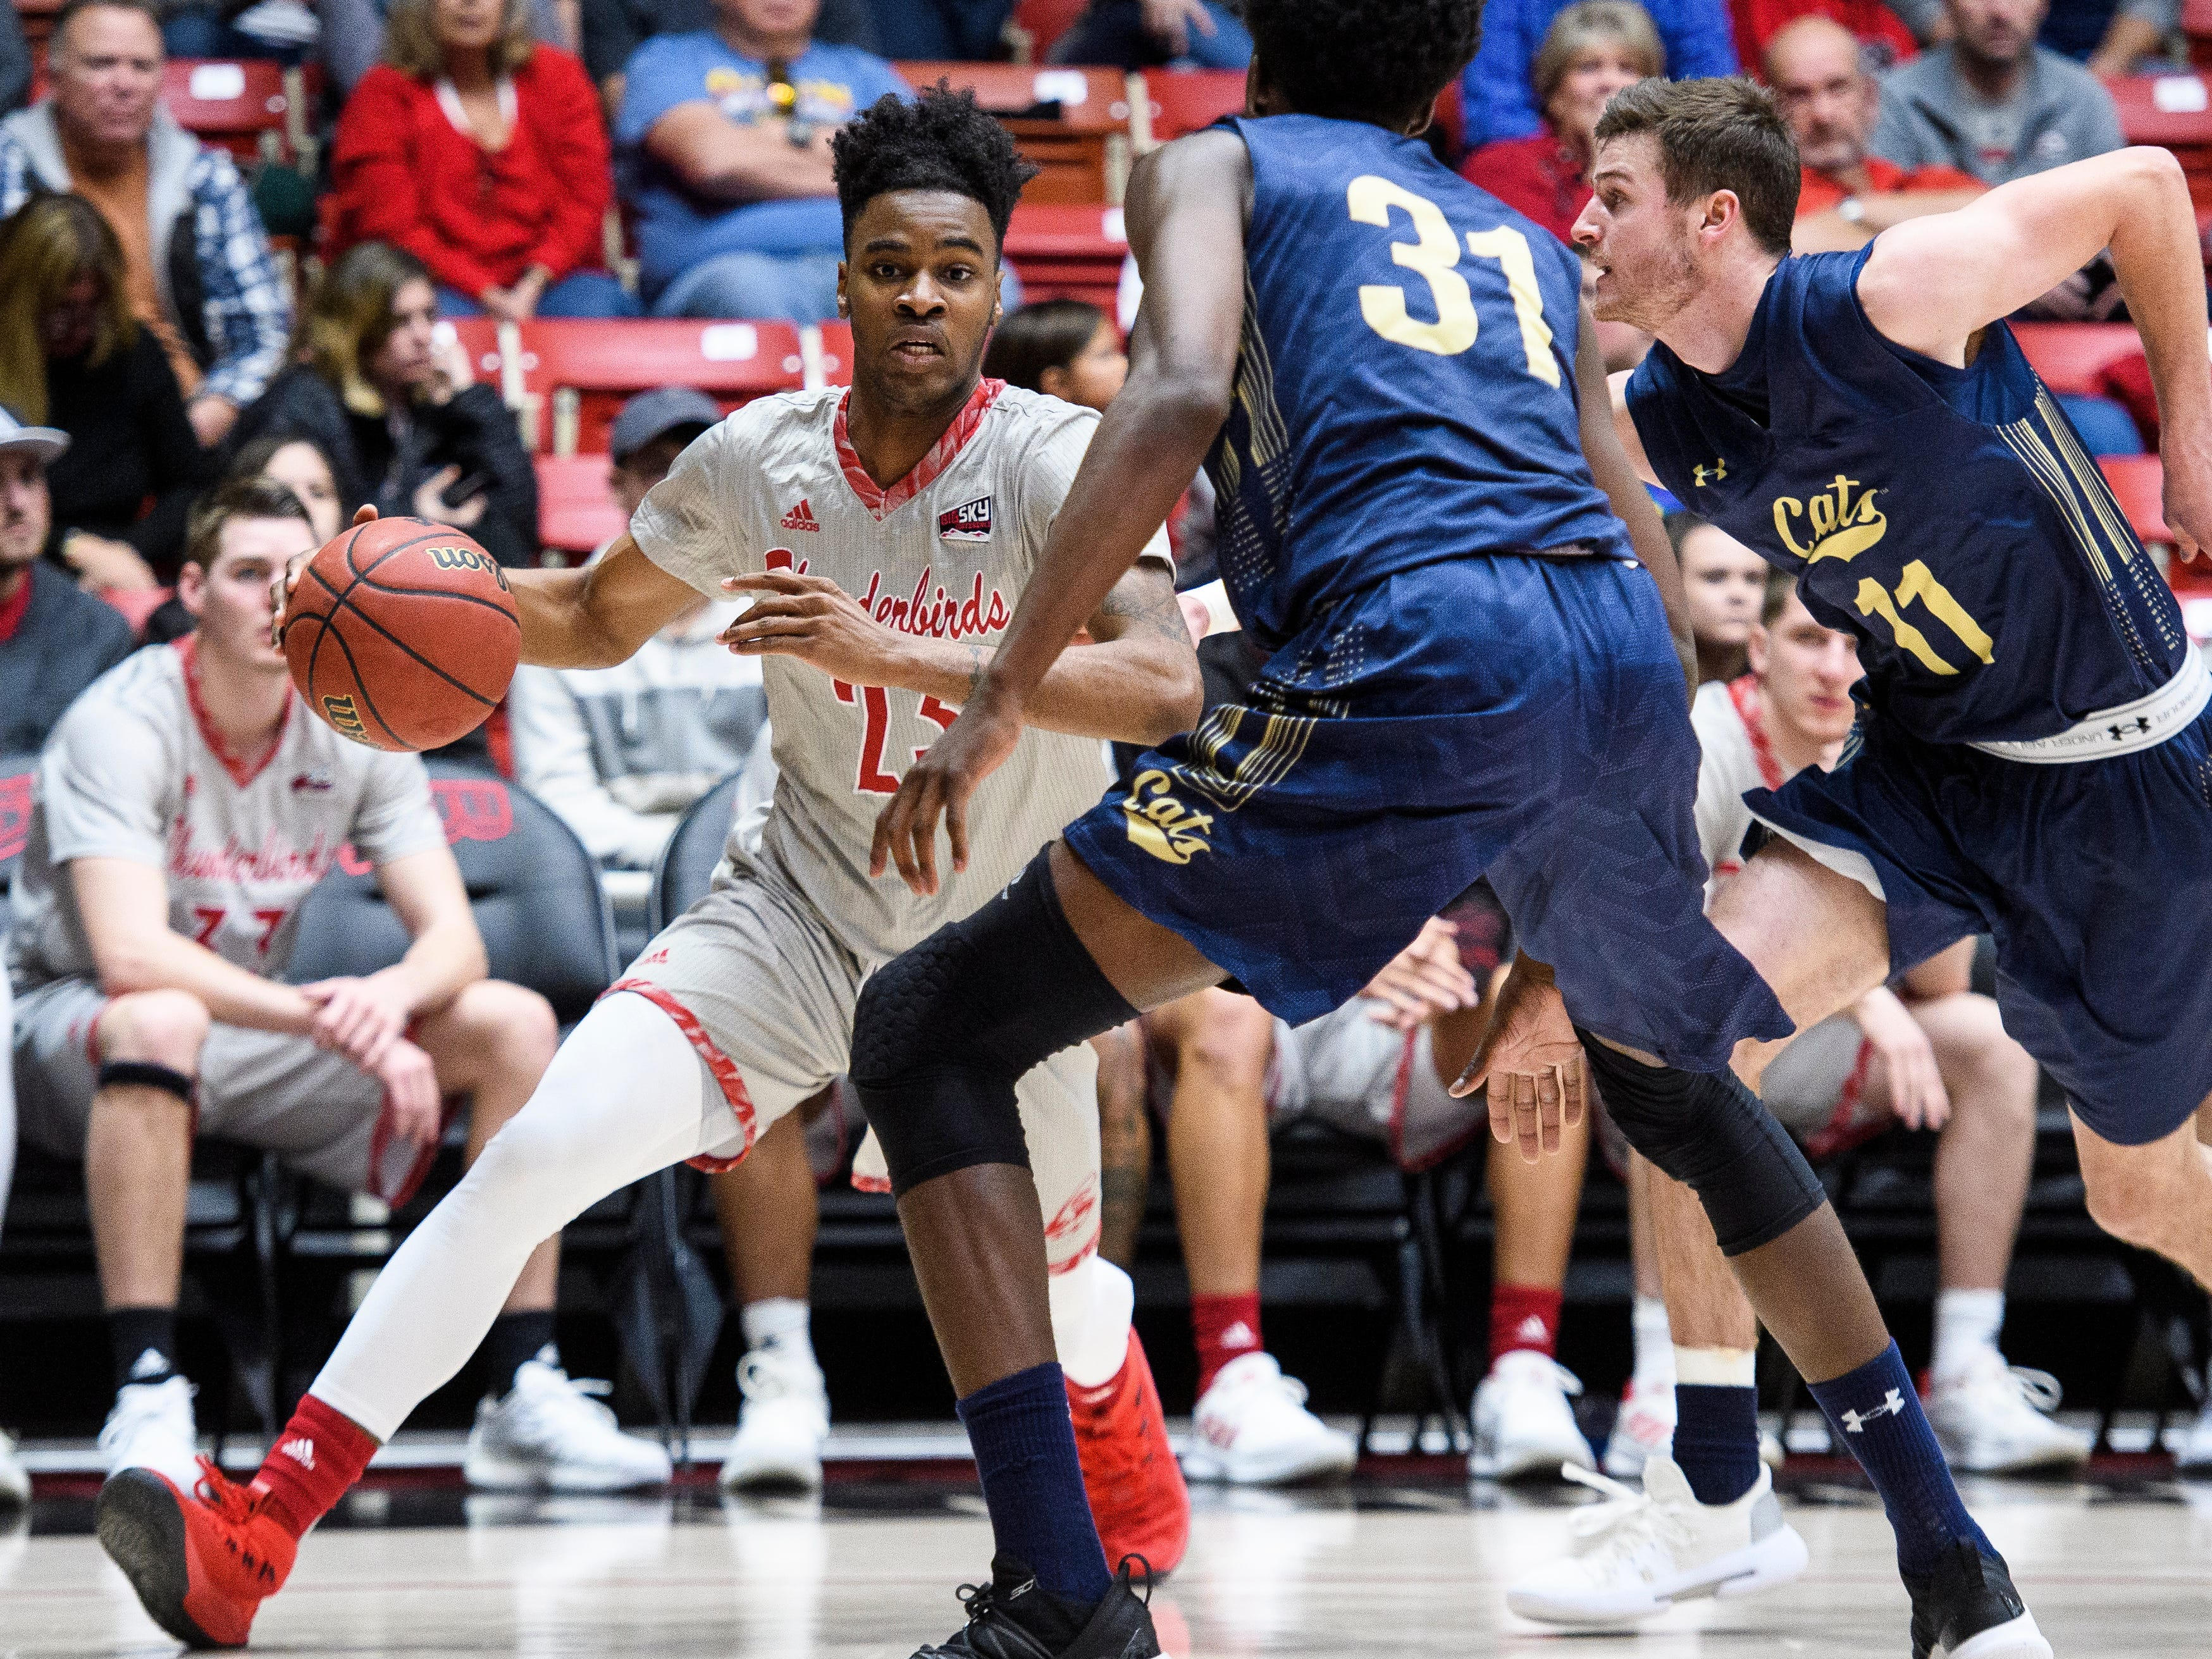 Southern Utah University junior Cameron Oluyitan (23) moves the ball against Montana State in the America First Event Center Saturday, December 29, 2018. SUU lost, 92-62.